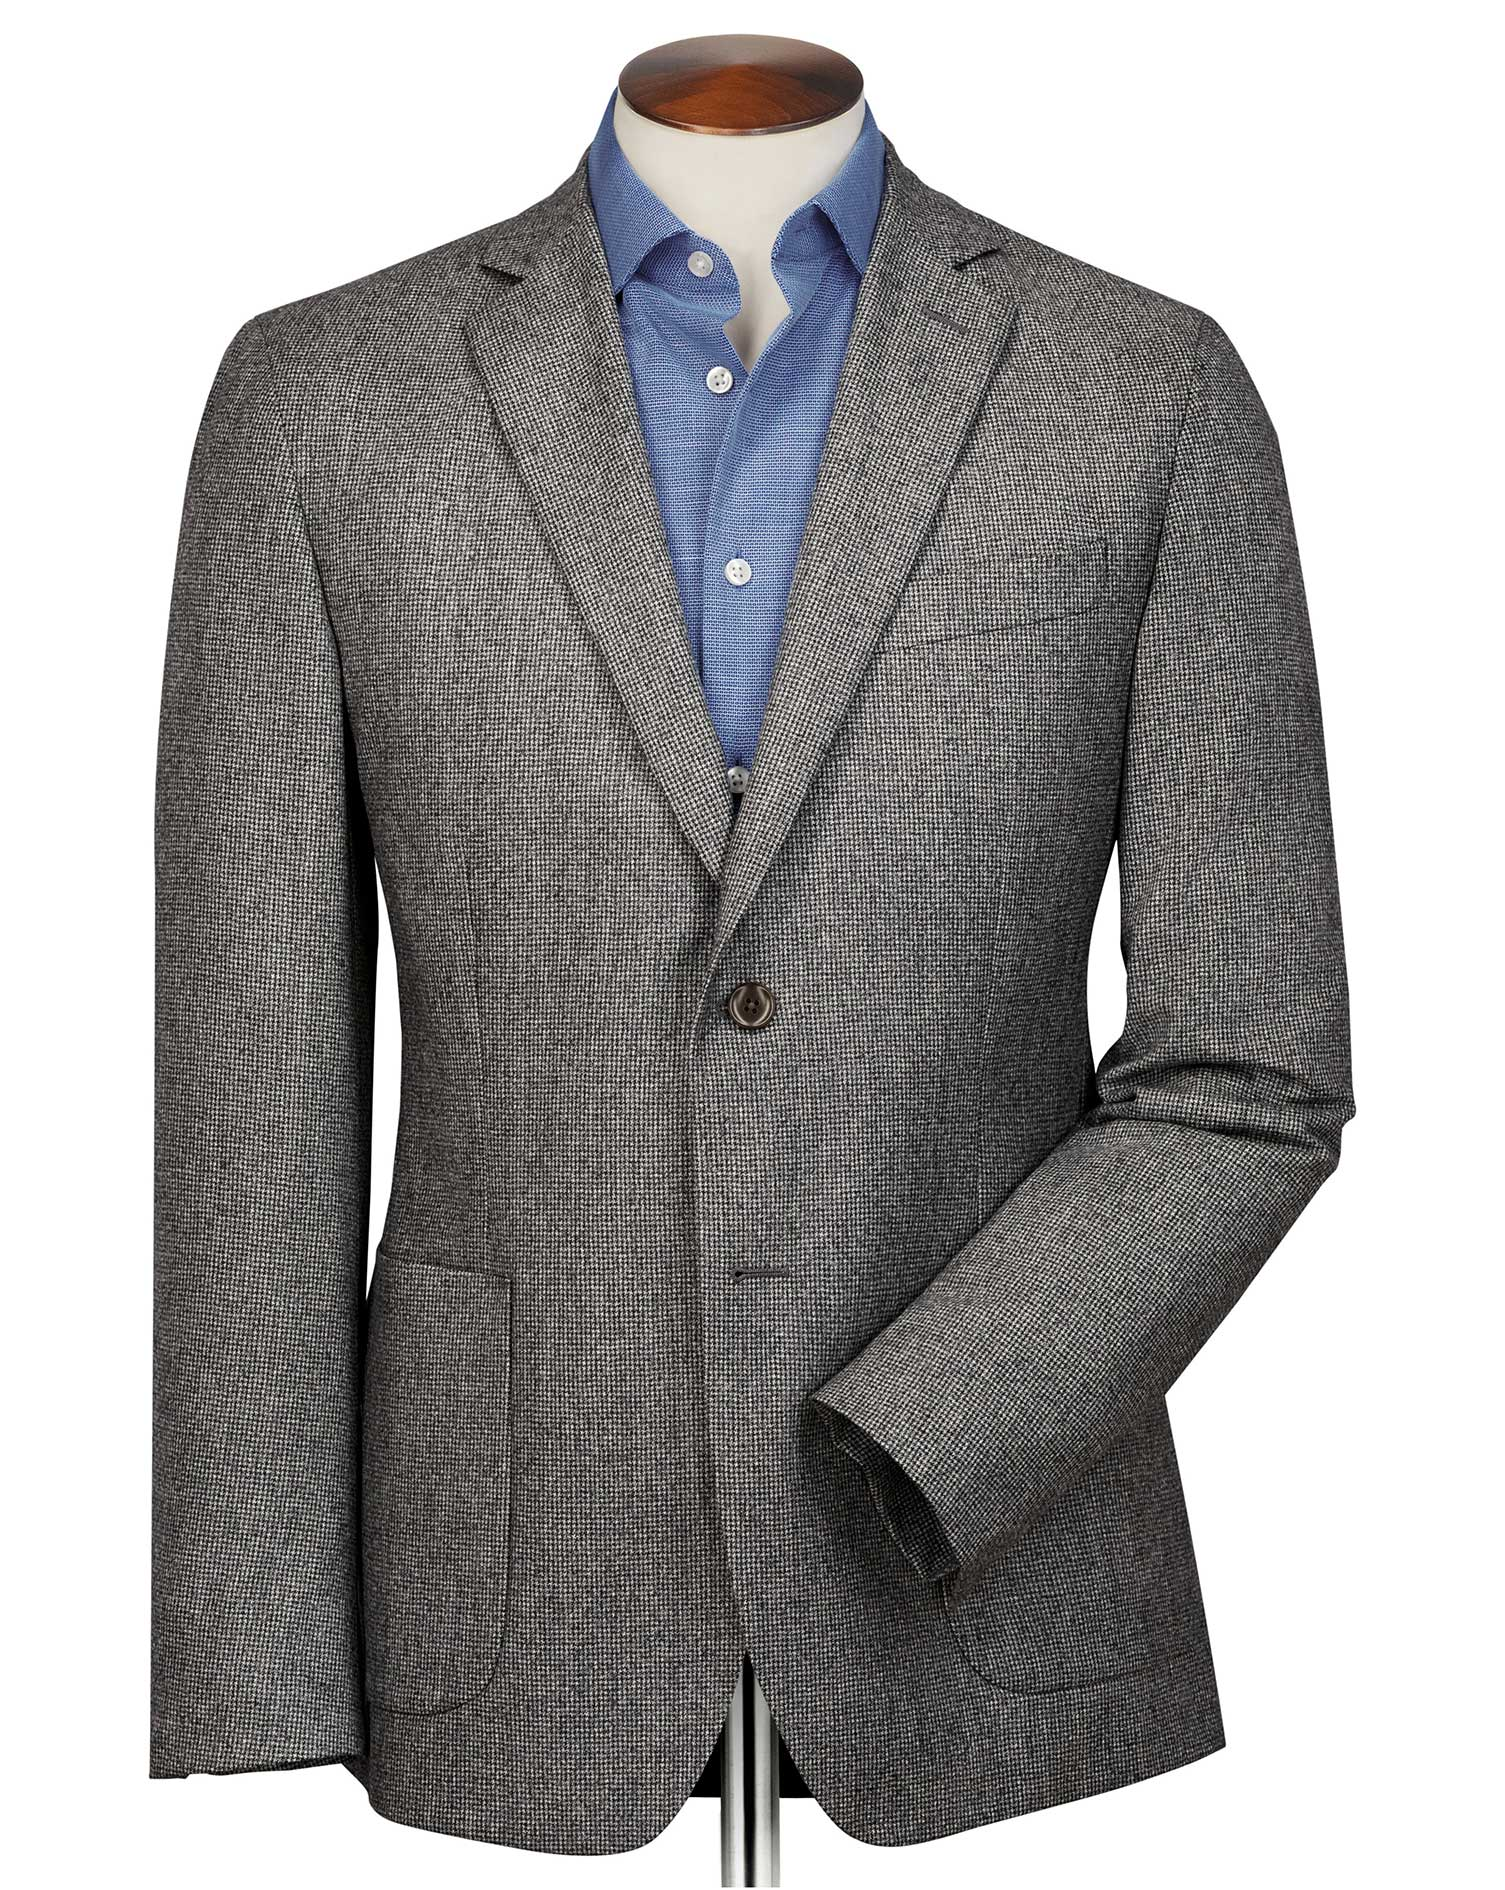 Slim Fit Grey Puppytooth Italian Wool Flannel Wool Blazer Size 46 Long by Charles Tyrwhitt